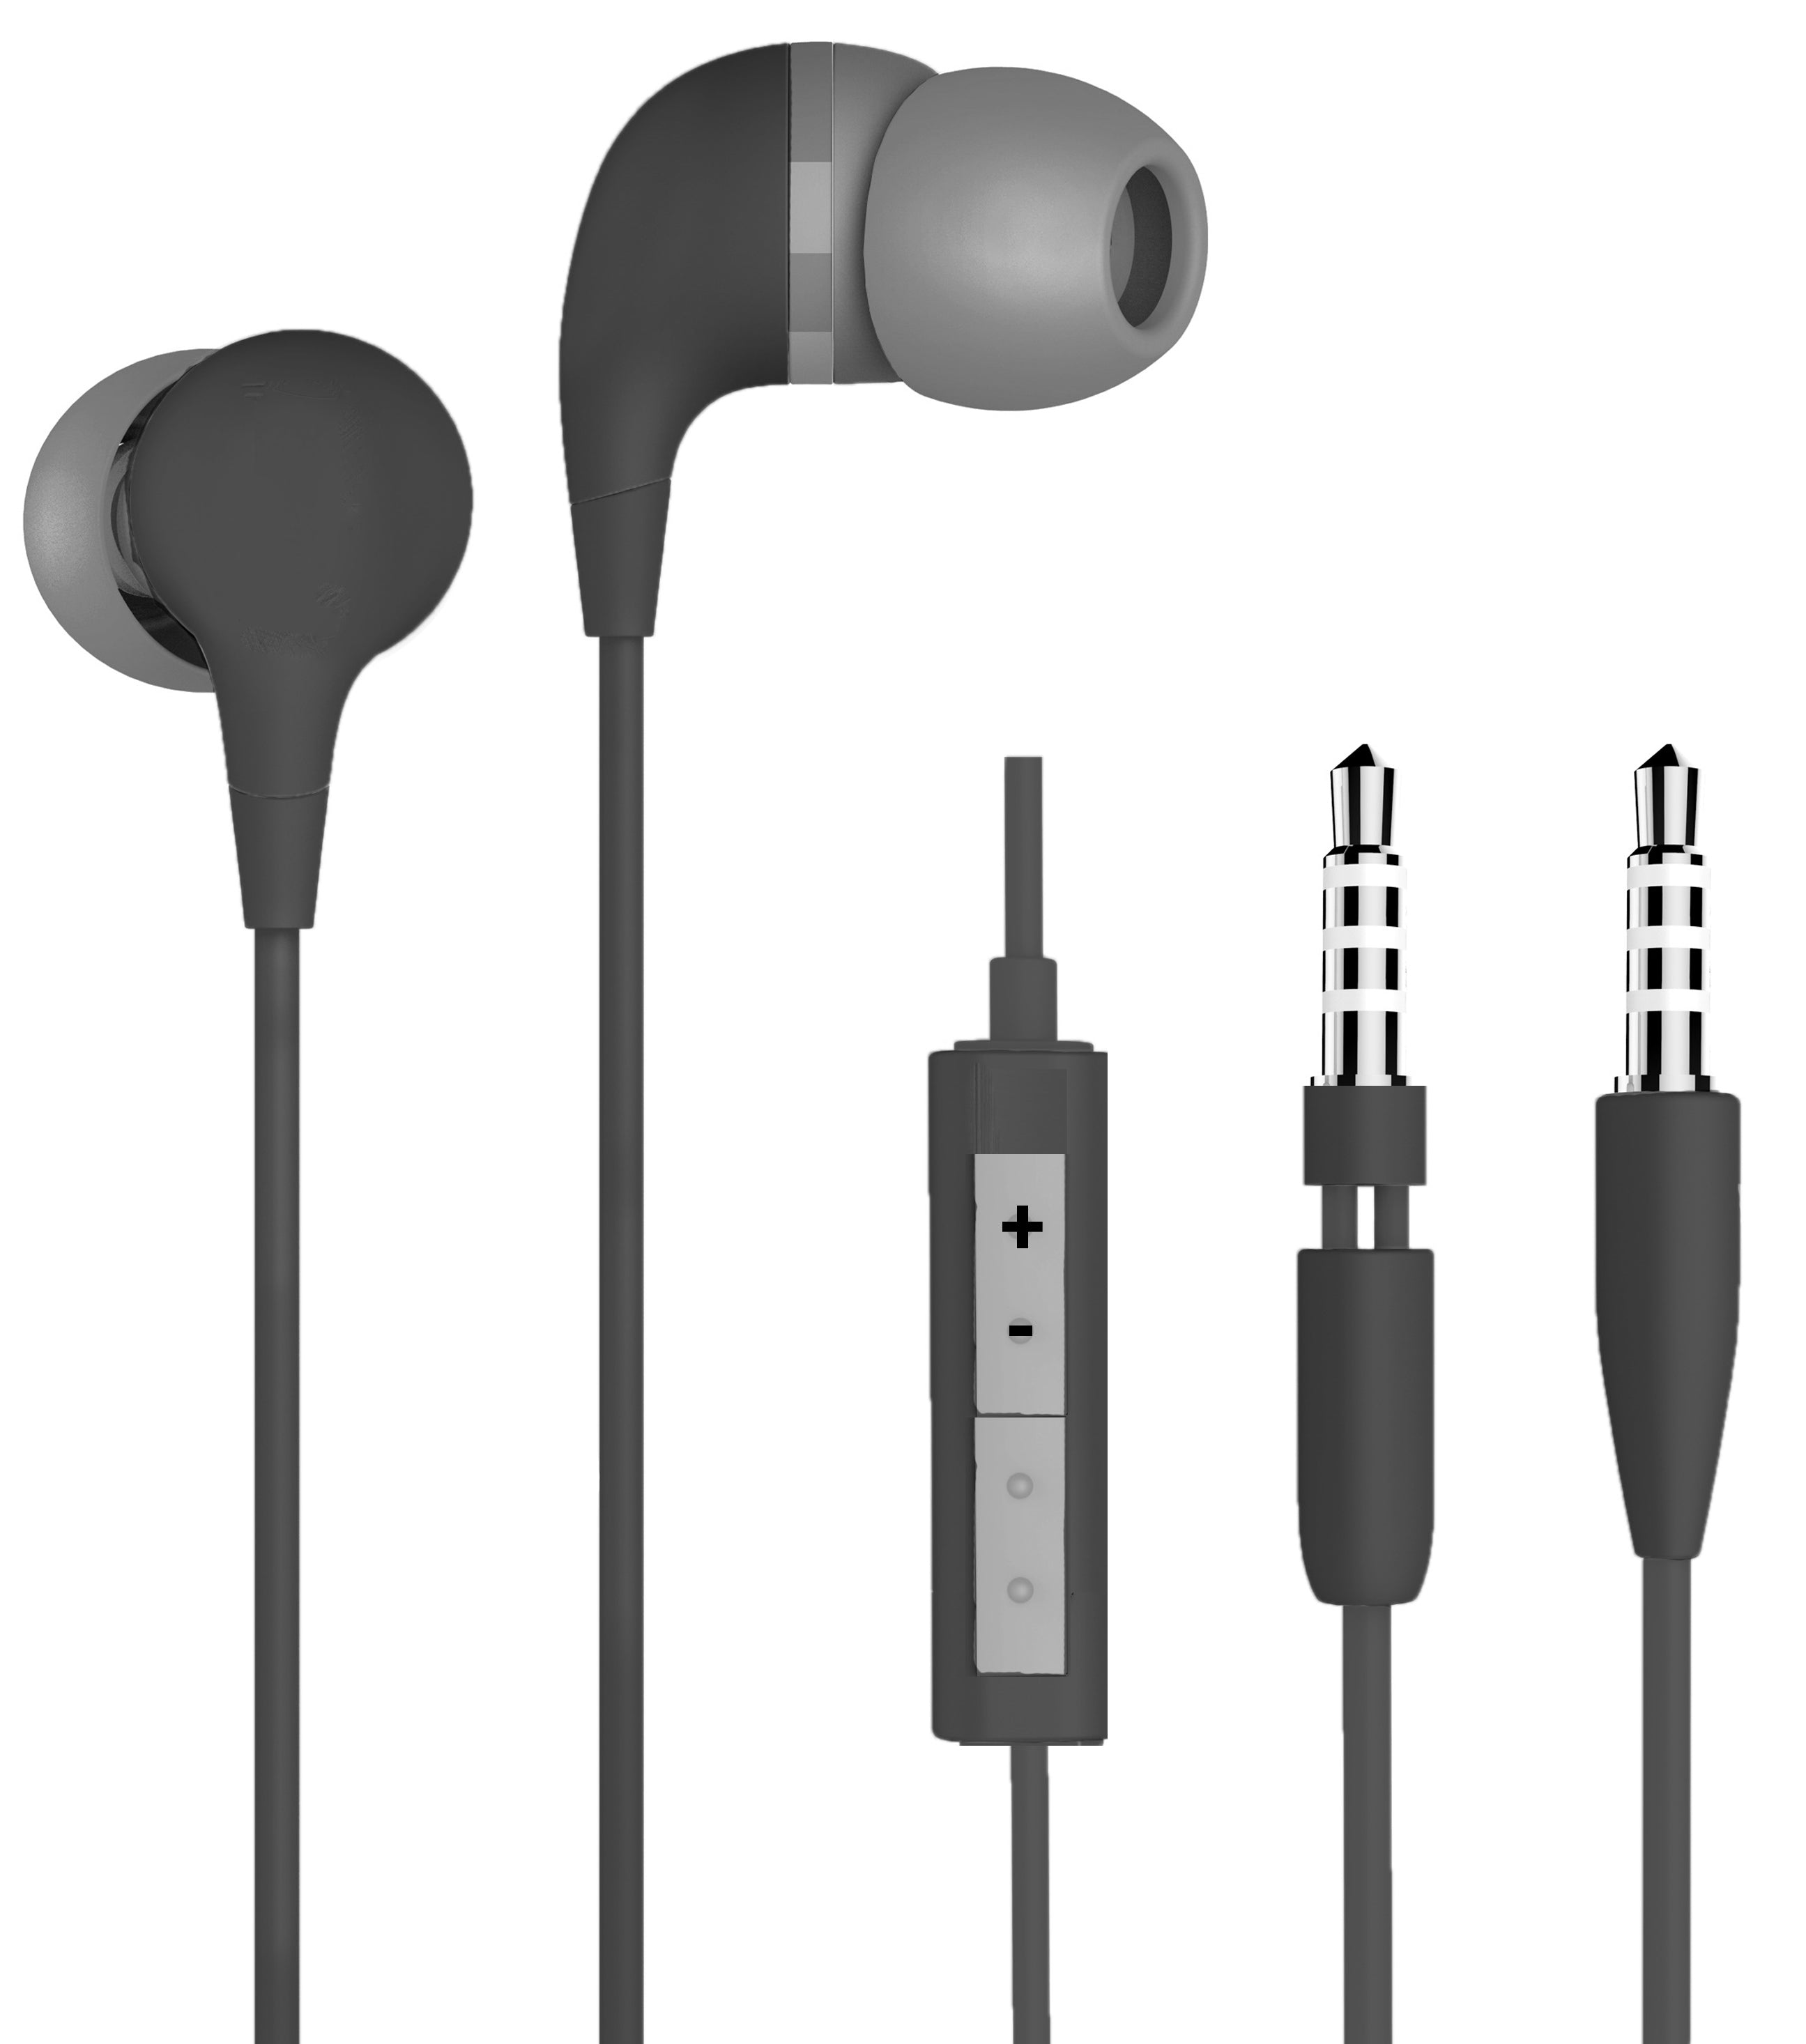 66e9bdec28d [FLASH SALE PRICE - $8.99] - NEW - [V3] Basic Premium Wired Earbuds with  Microphone For Hands Free Phone Calls & Volume Control Cable - Simple In-Ear  ...